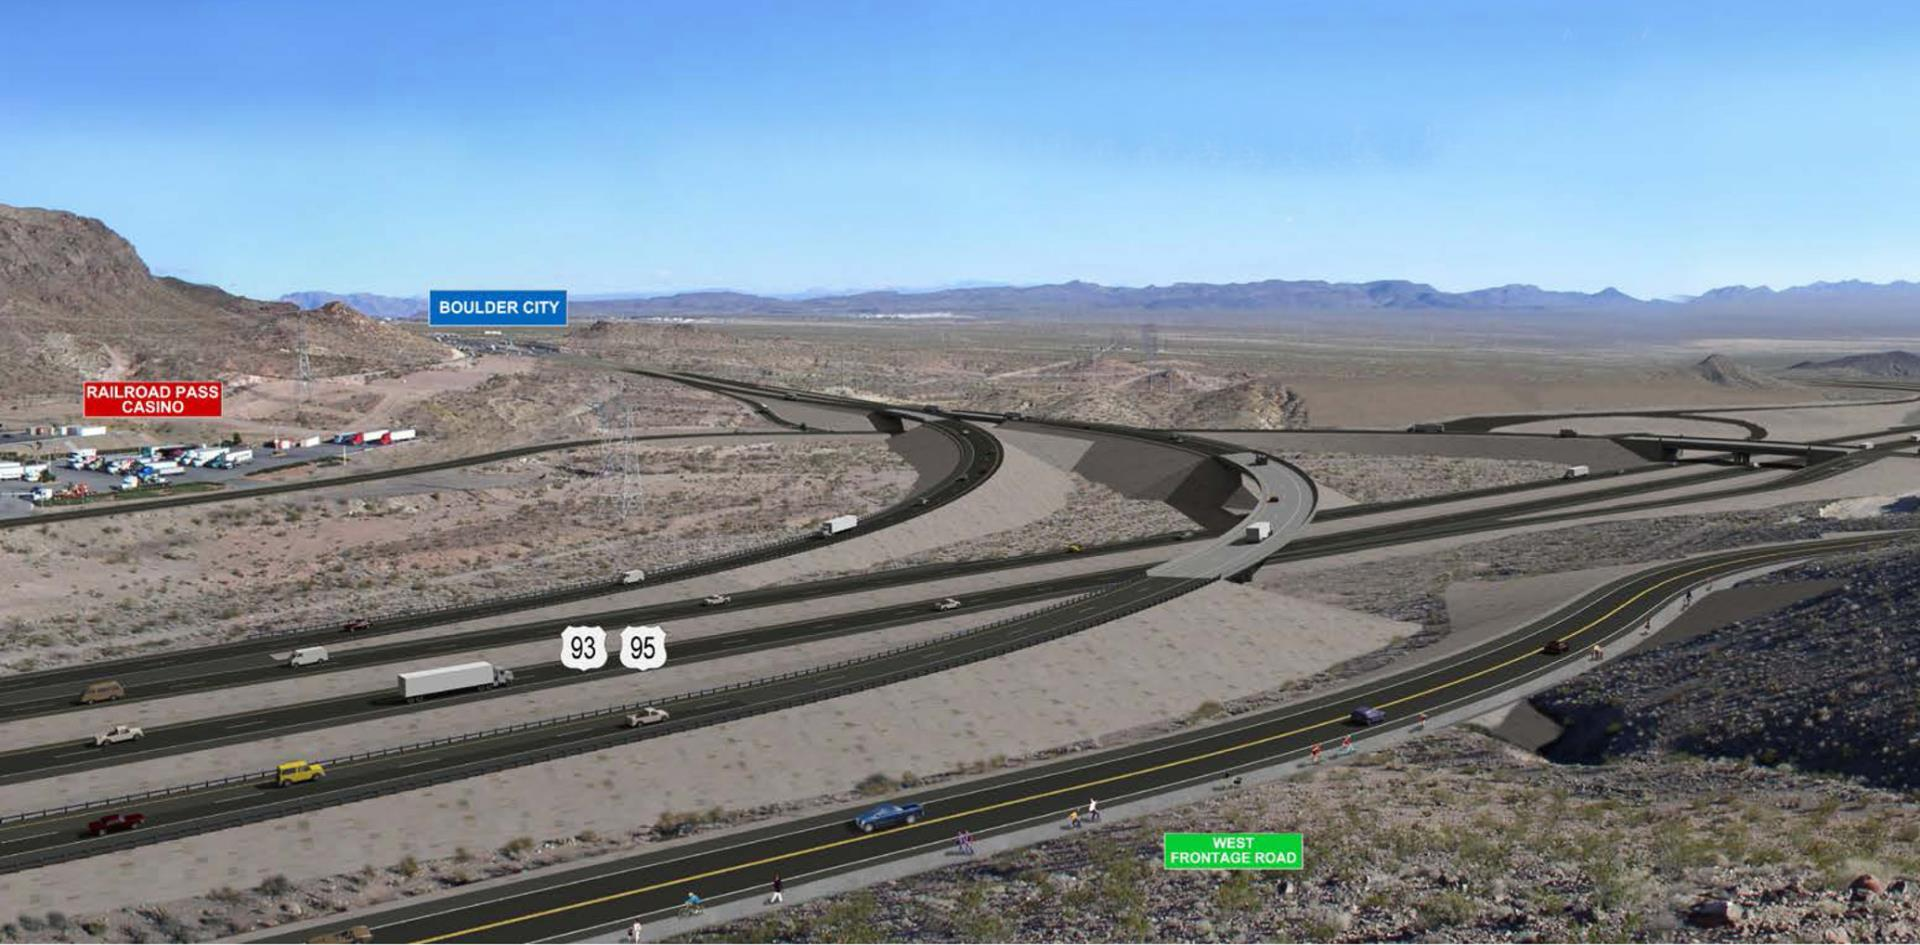 Nevada Department Of Transportation  News Releases  US Highway - Us highway forecast map